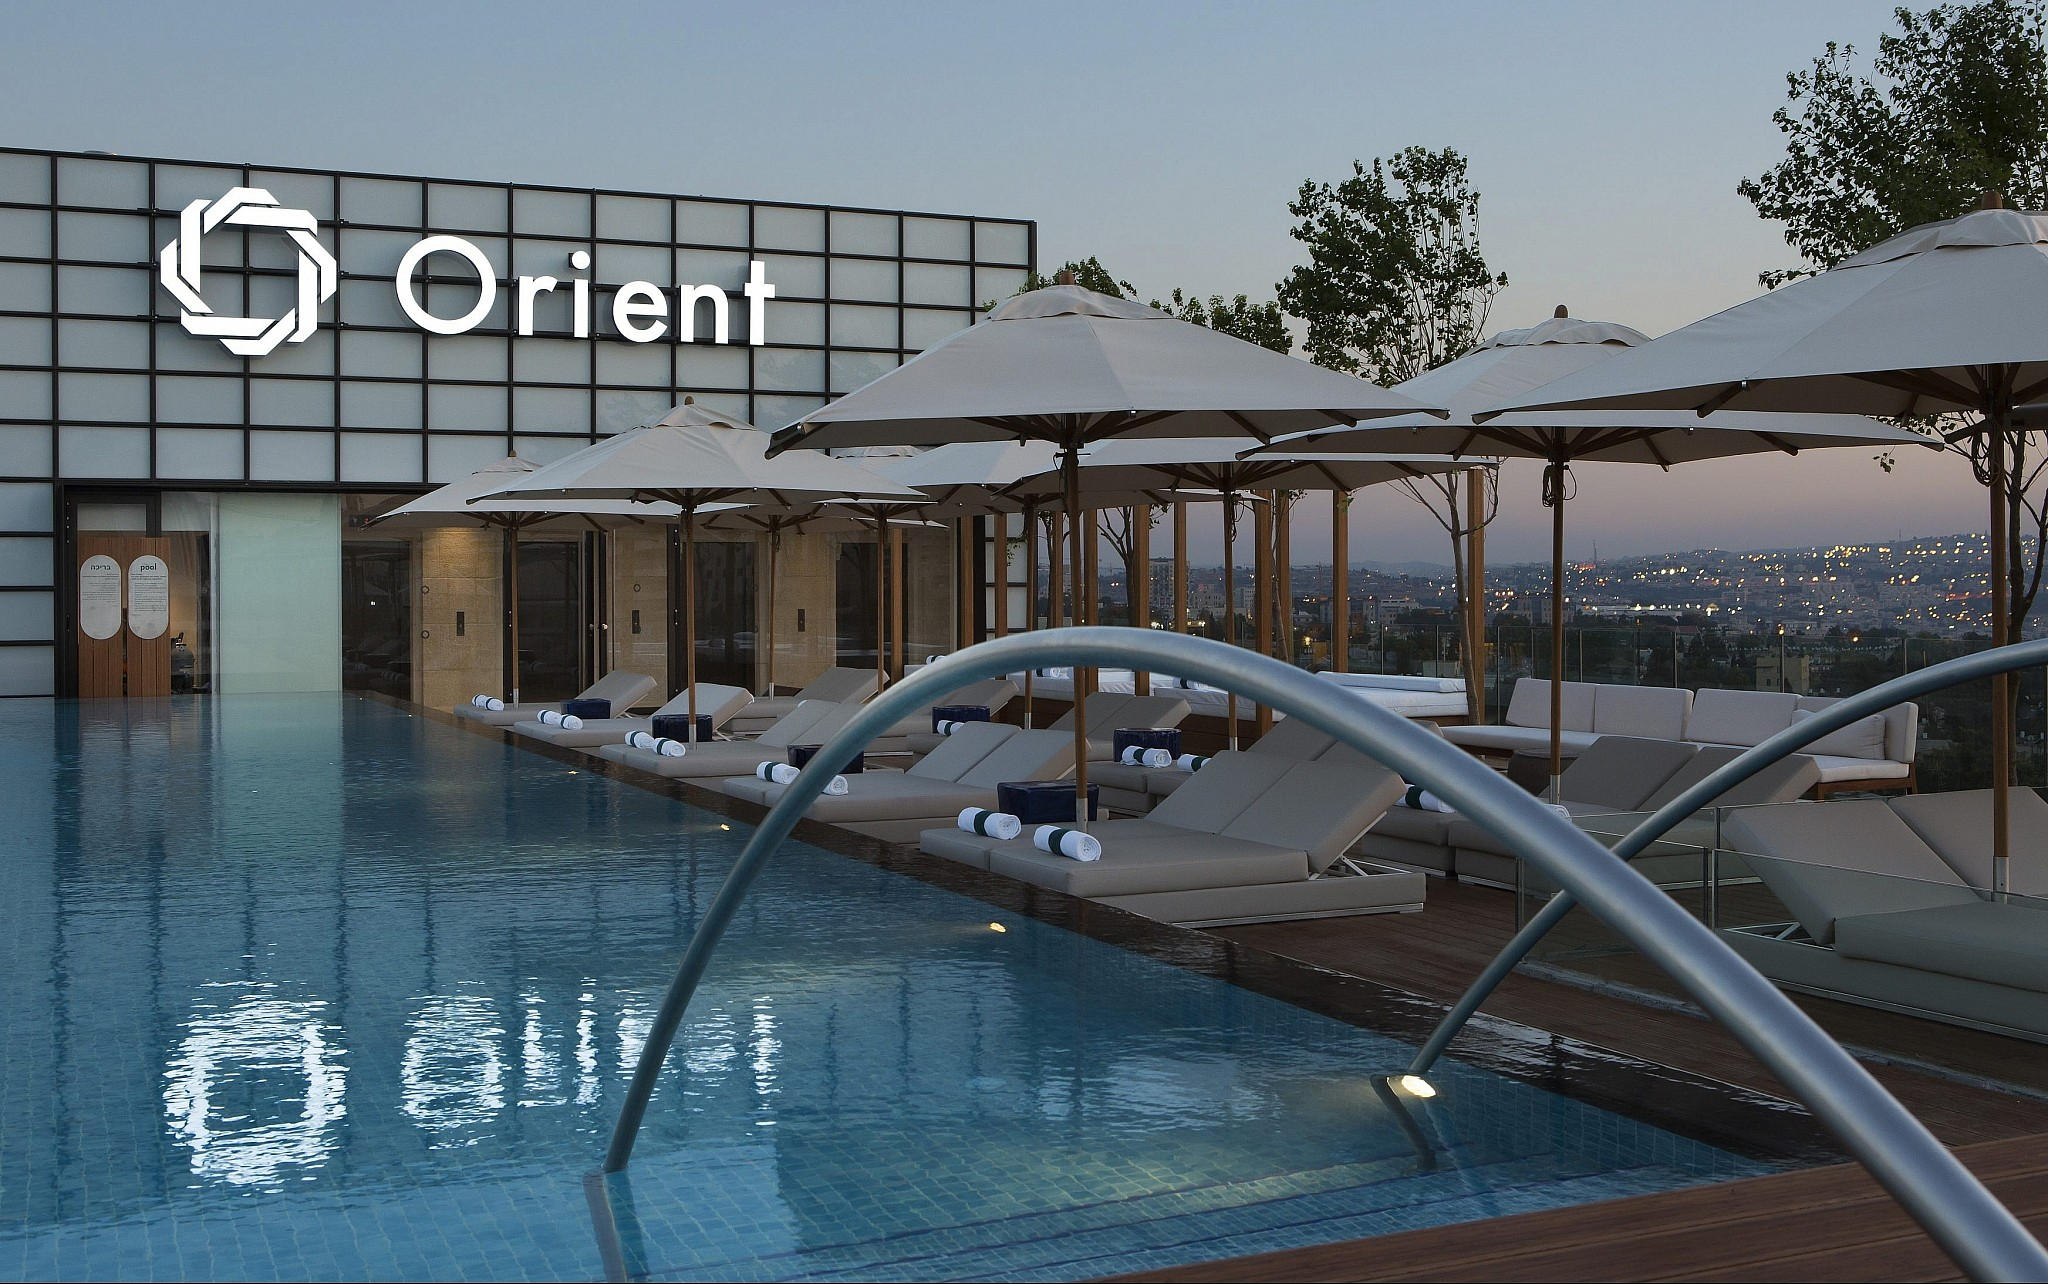 Jerusalem 39 S Newest Luxury Hotel Opens With A Touch Of The 39 Orient 39 The Times Of Israel